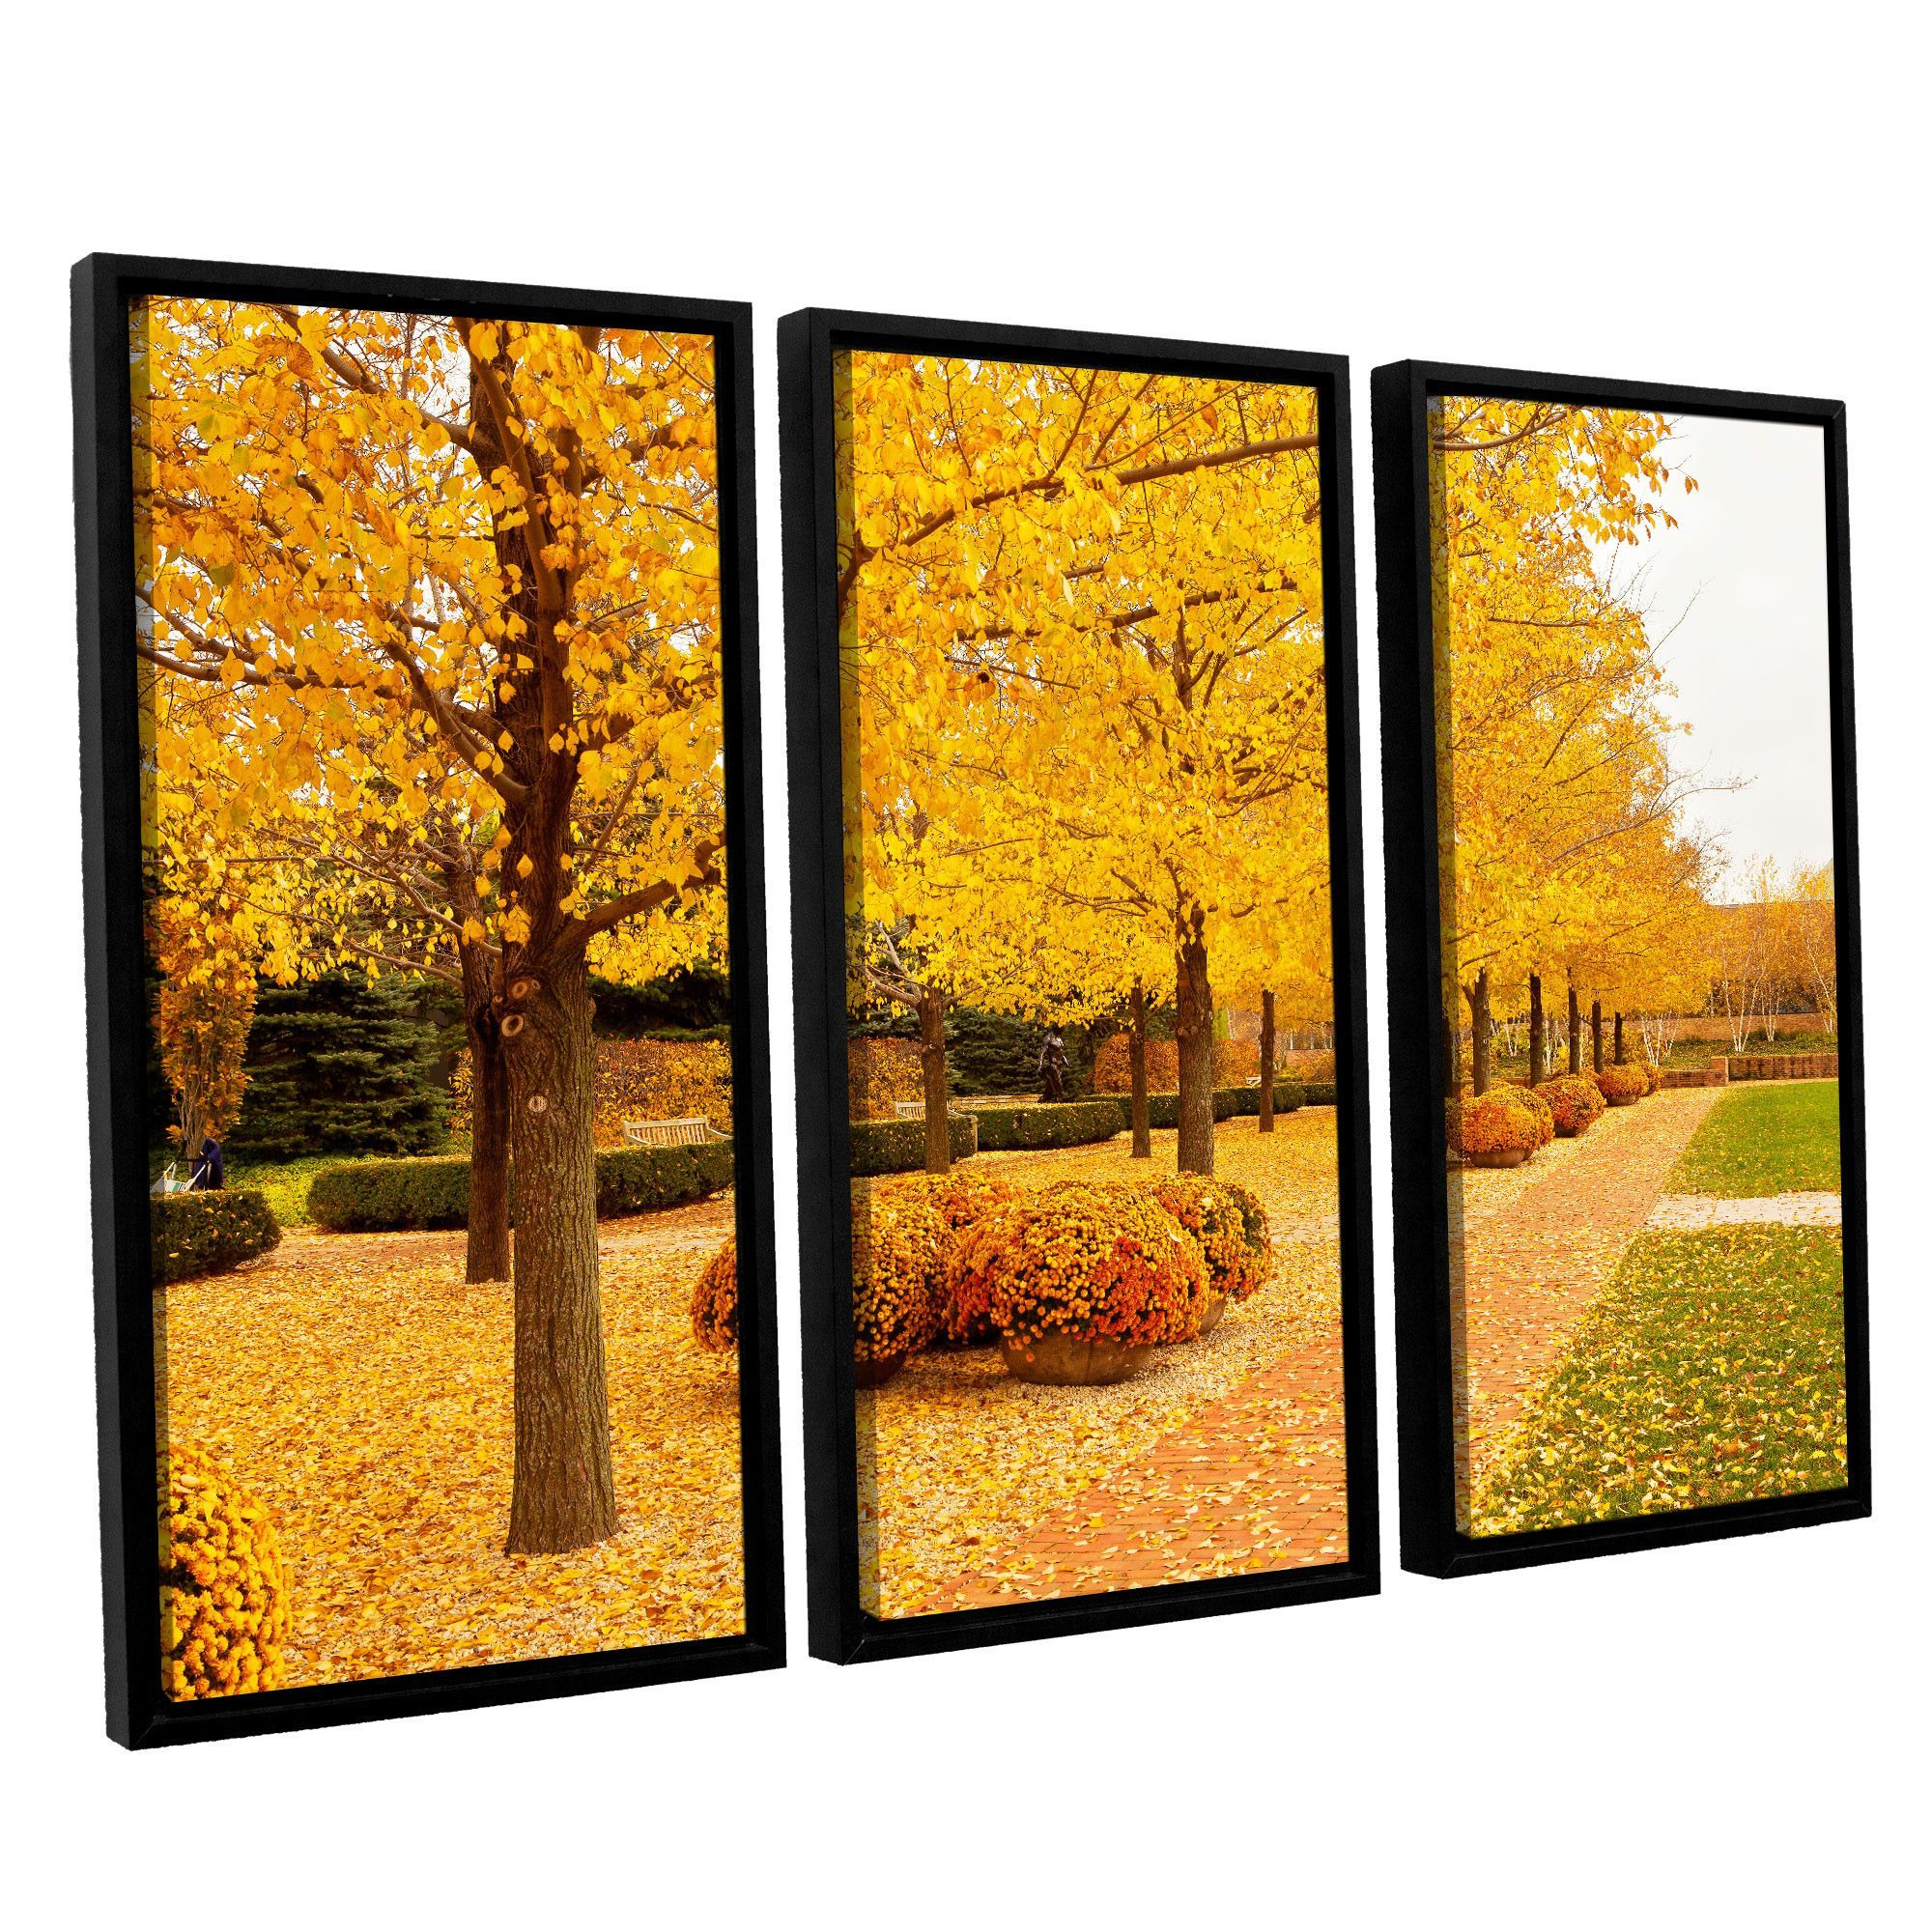 Famous 3 Piece Framed Wall Art Pictures Inspiration - The Wall Art ...